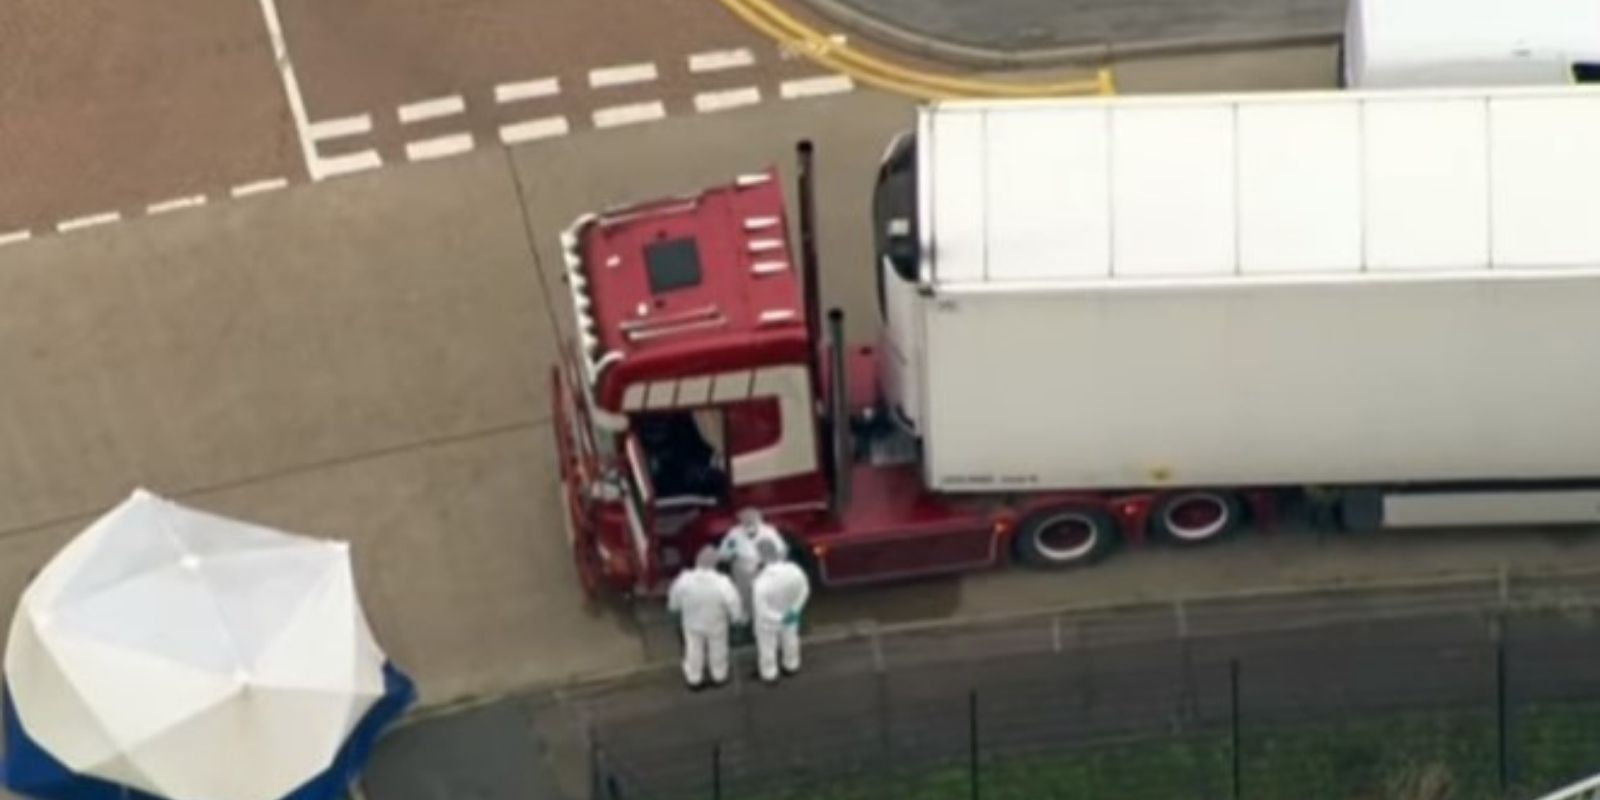 Thirty-nine people found dead in back of transport truck east of London, England